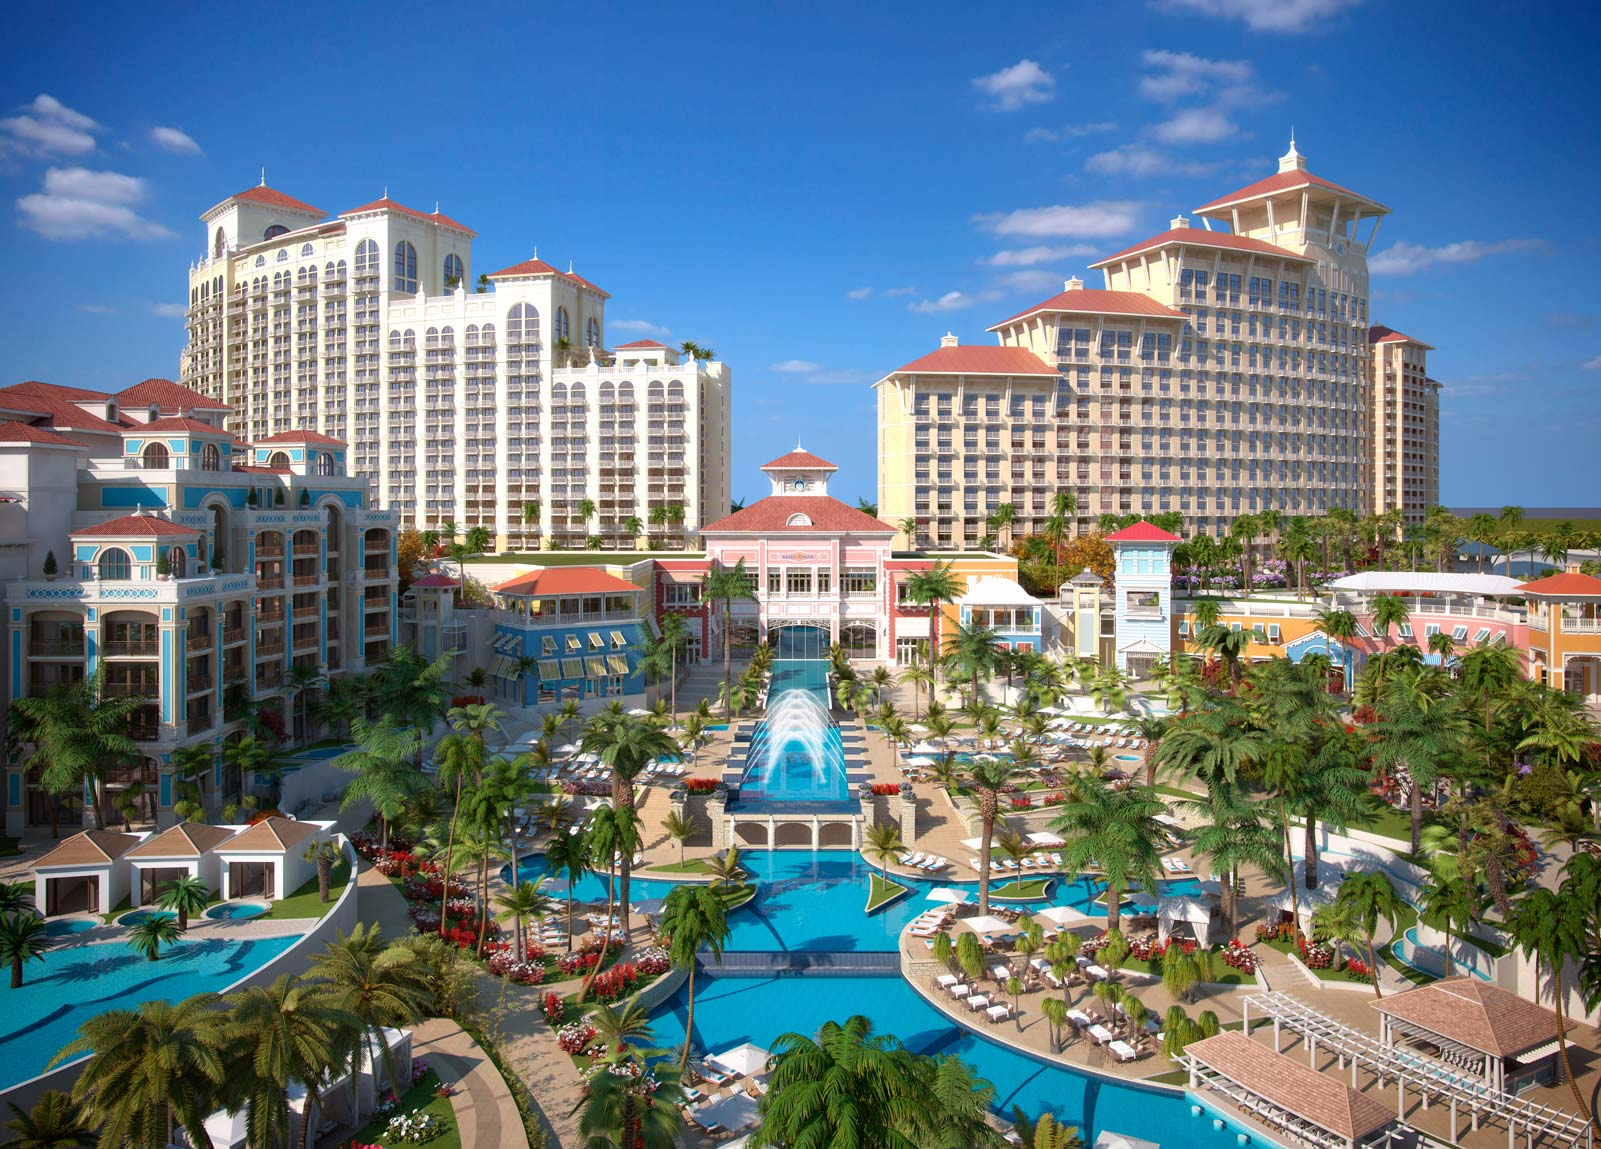 baha mar casino & hotel